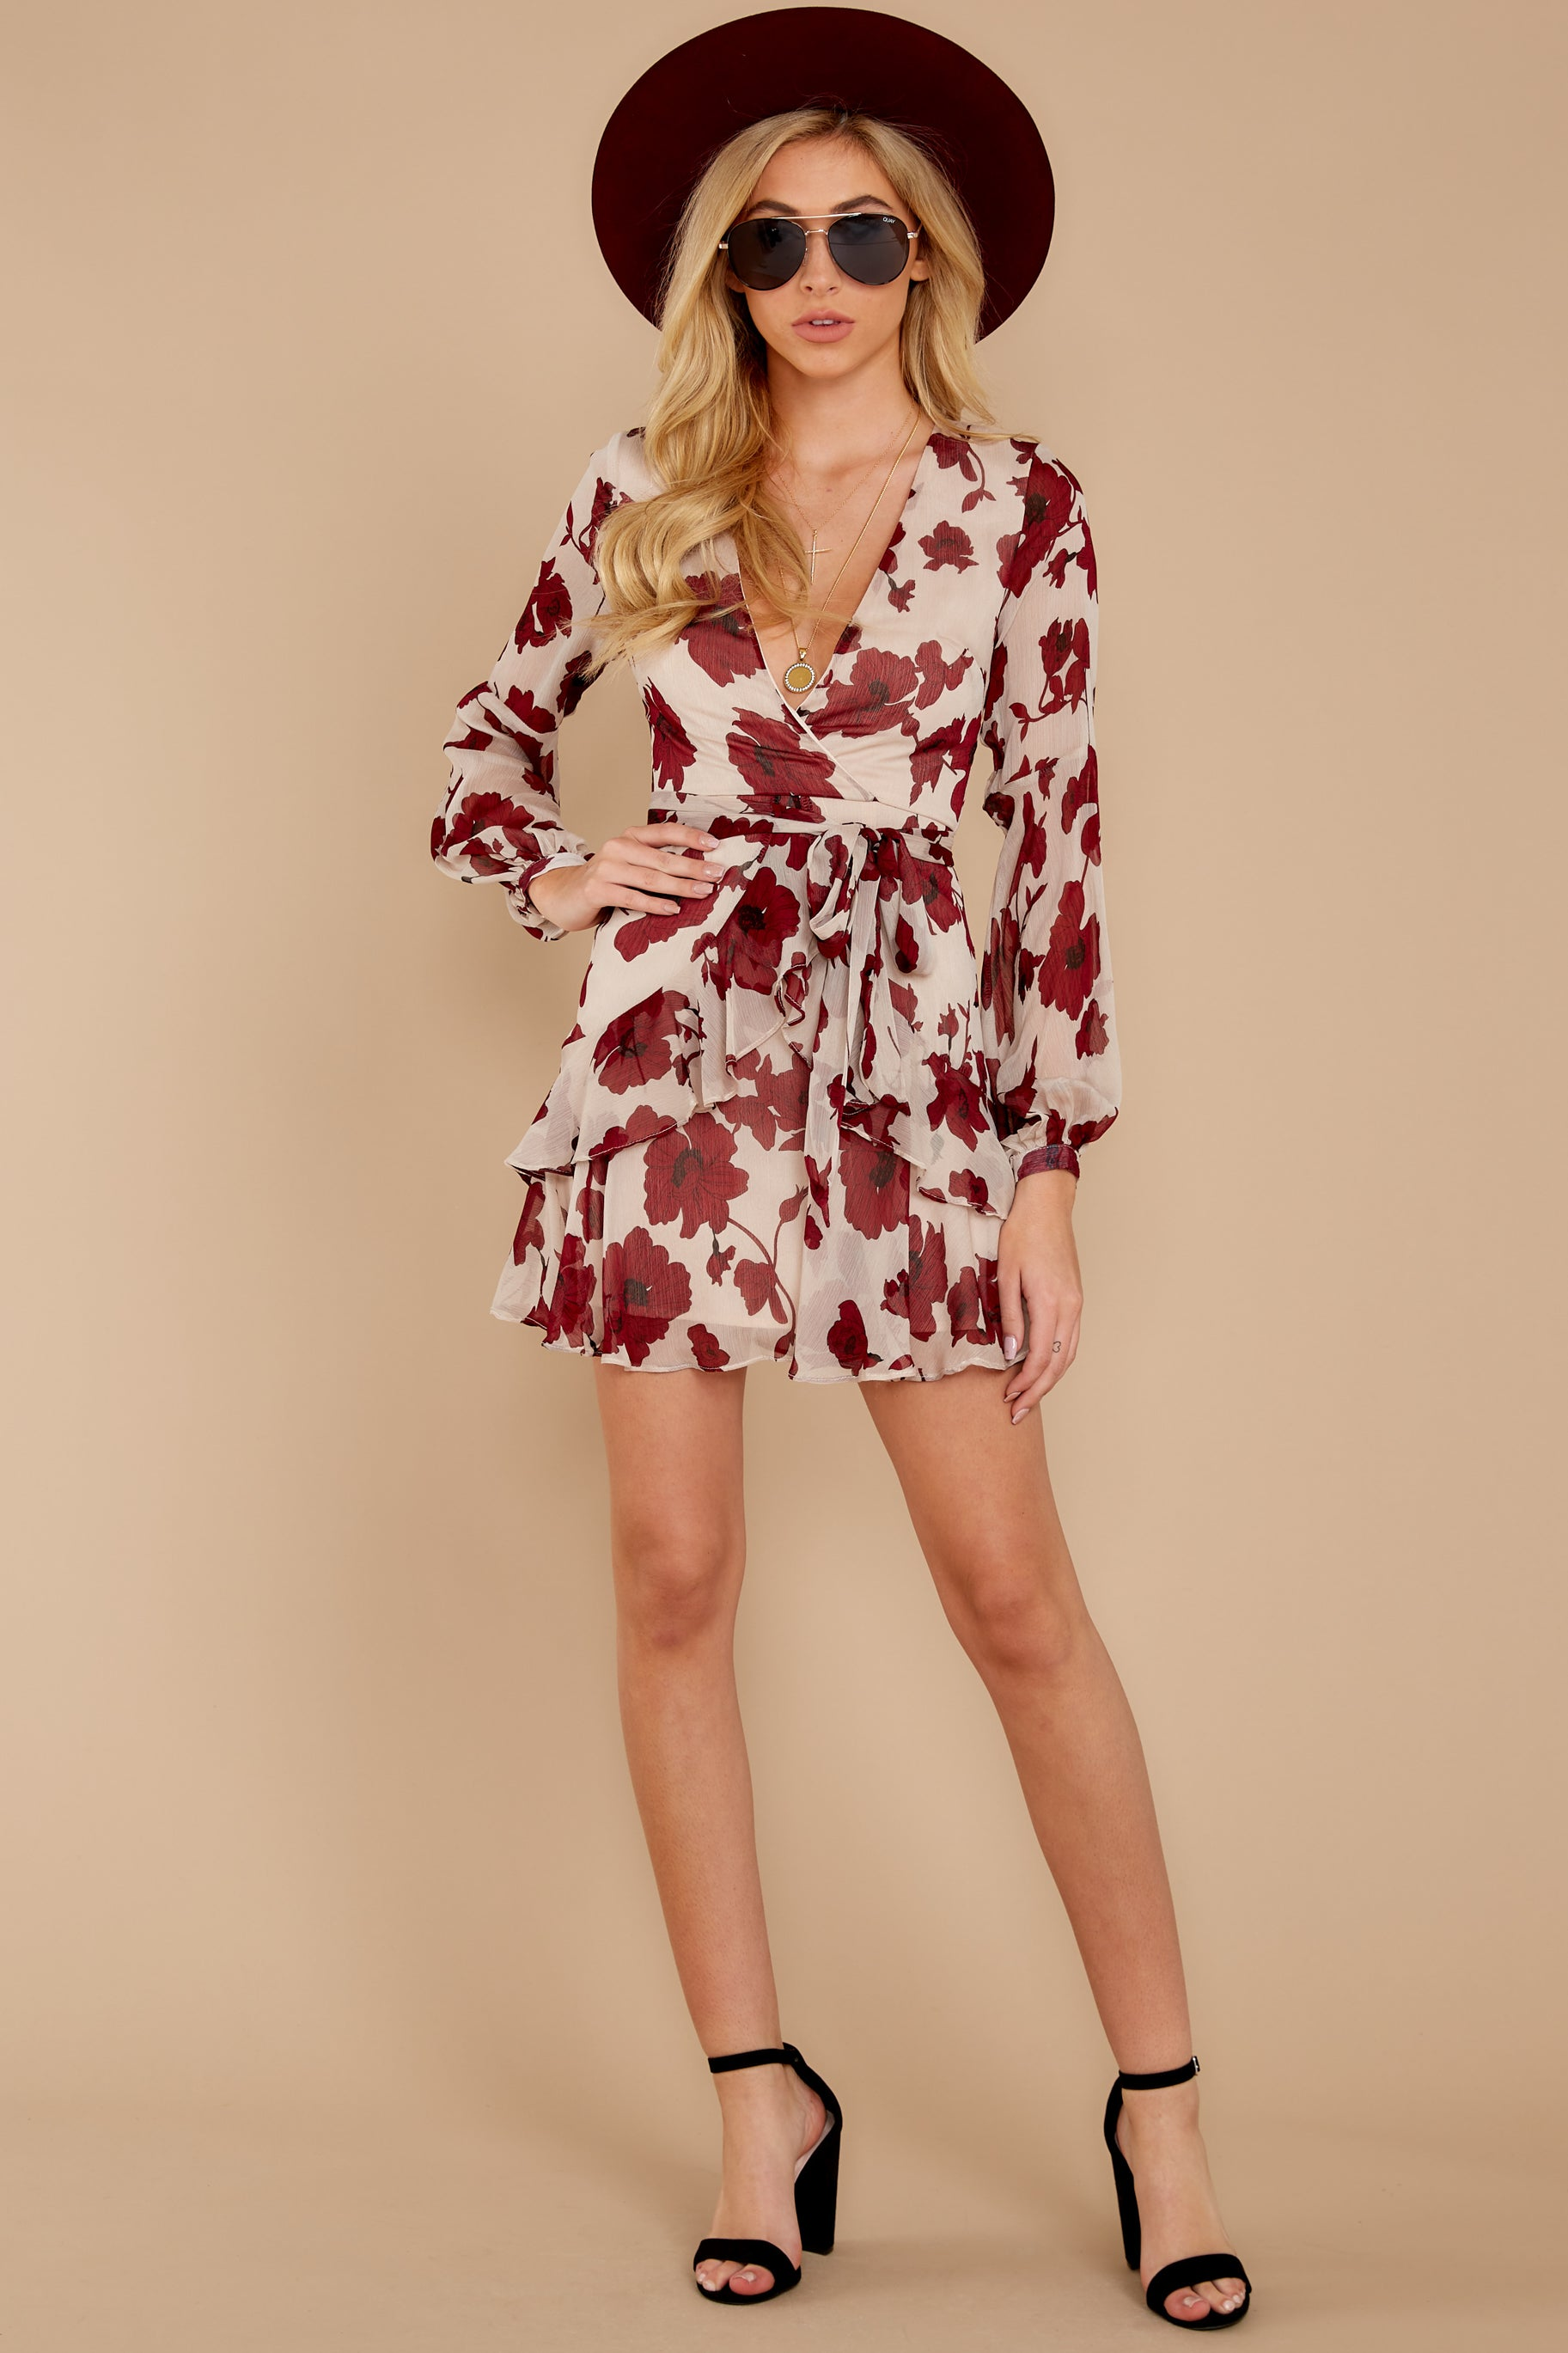 1 Simply Yours Burgundy Floral Print Dress at reddress.com